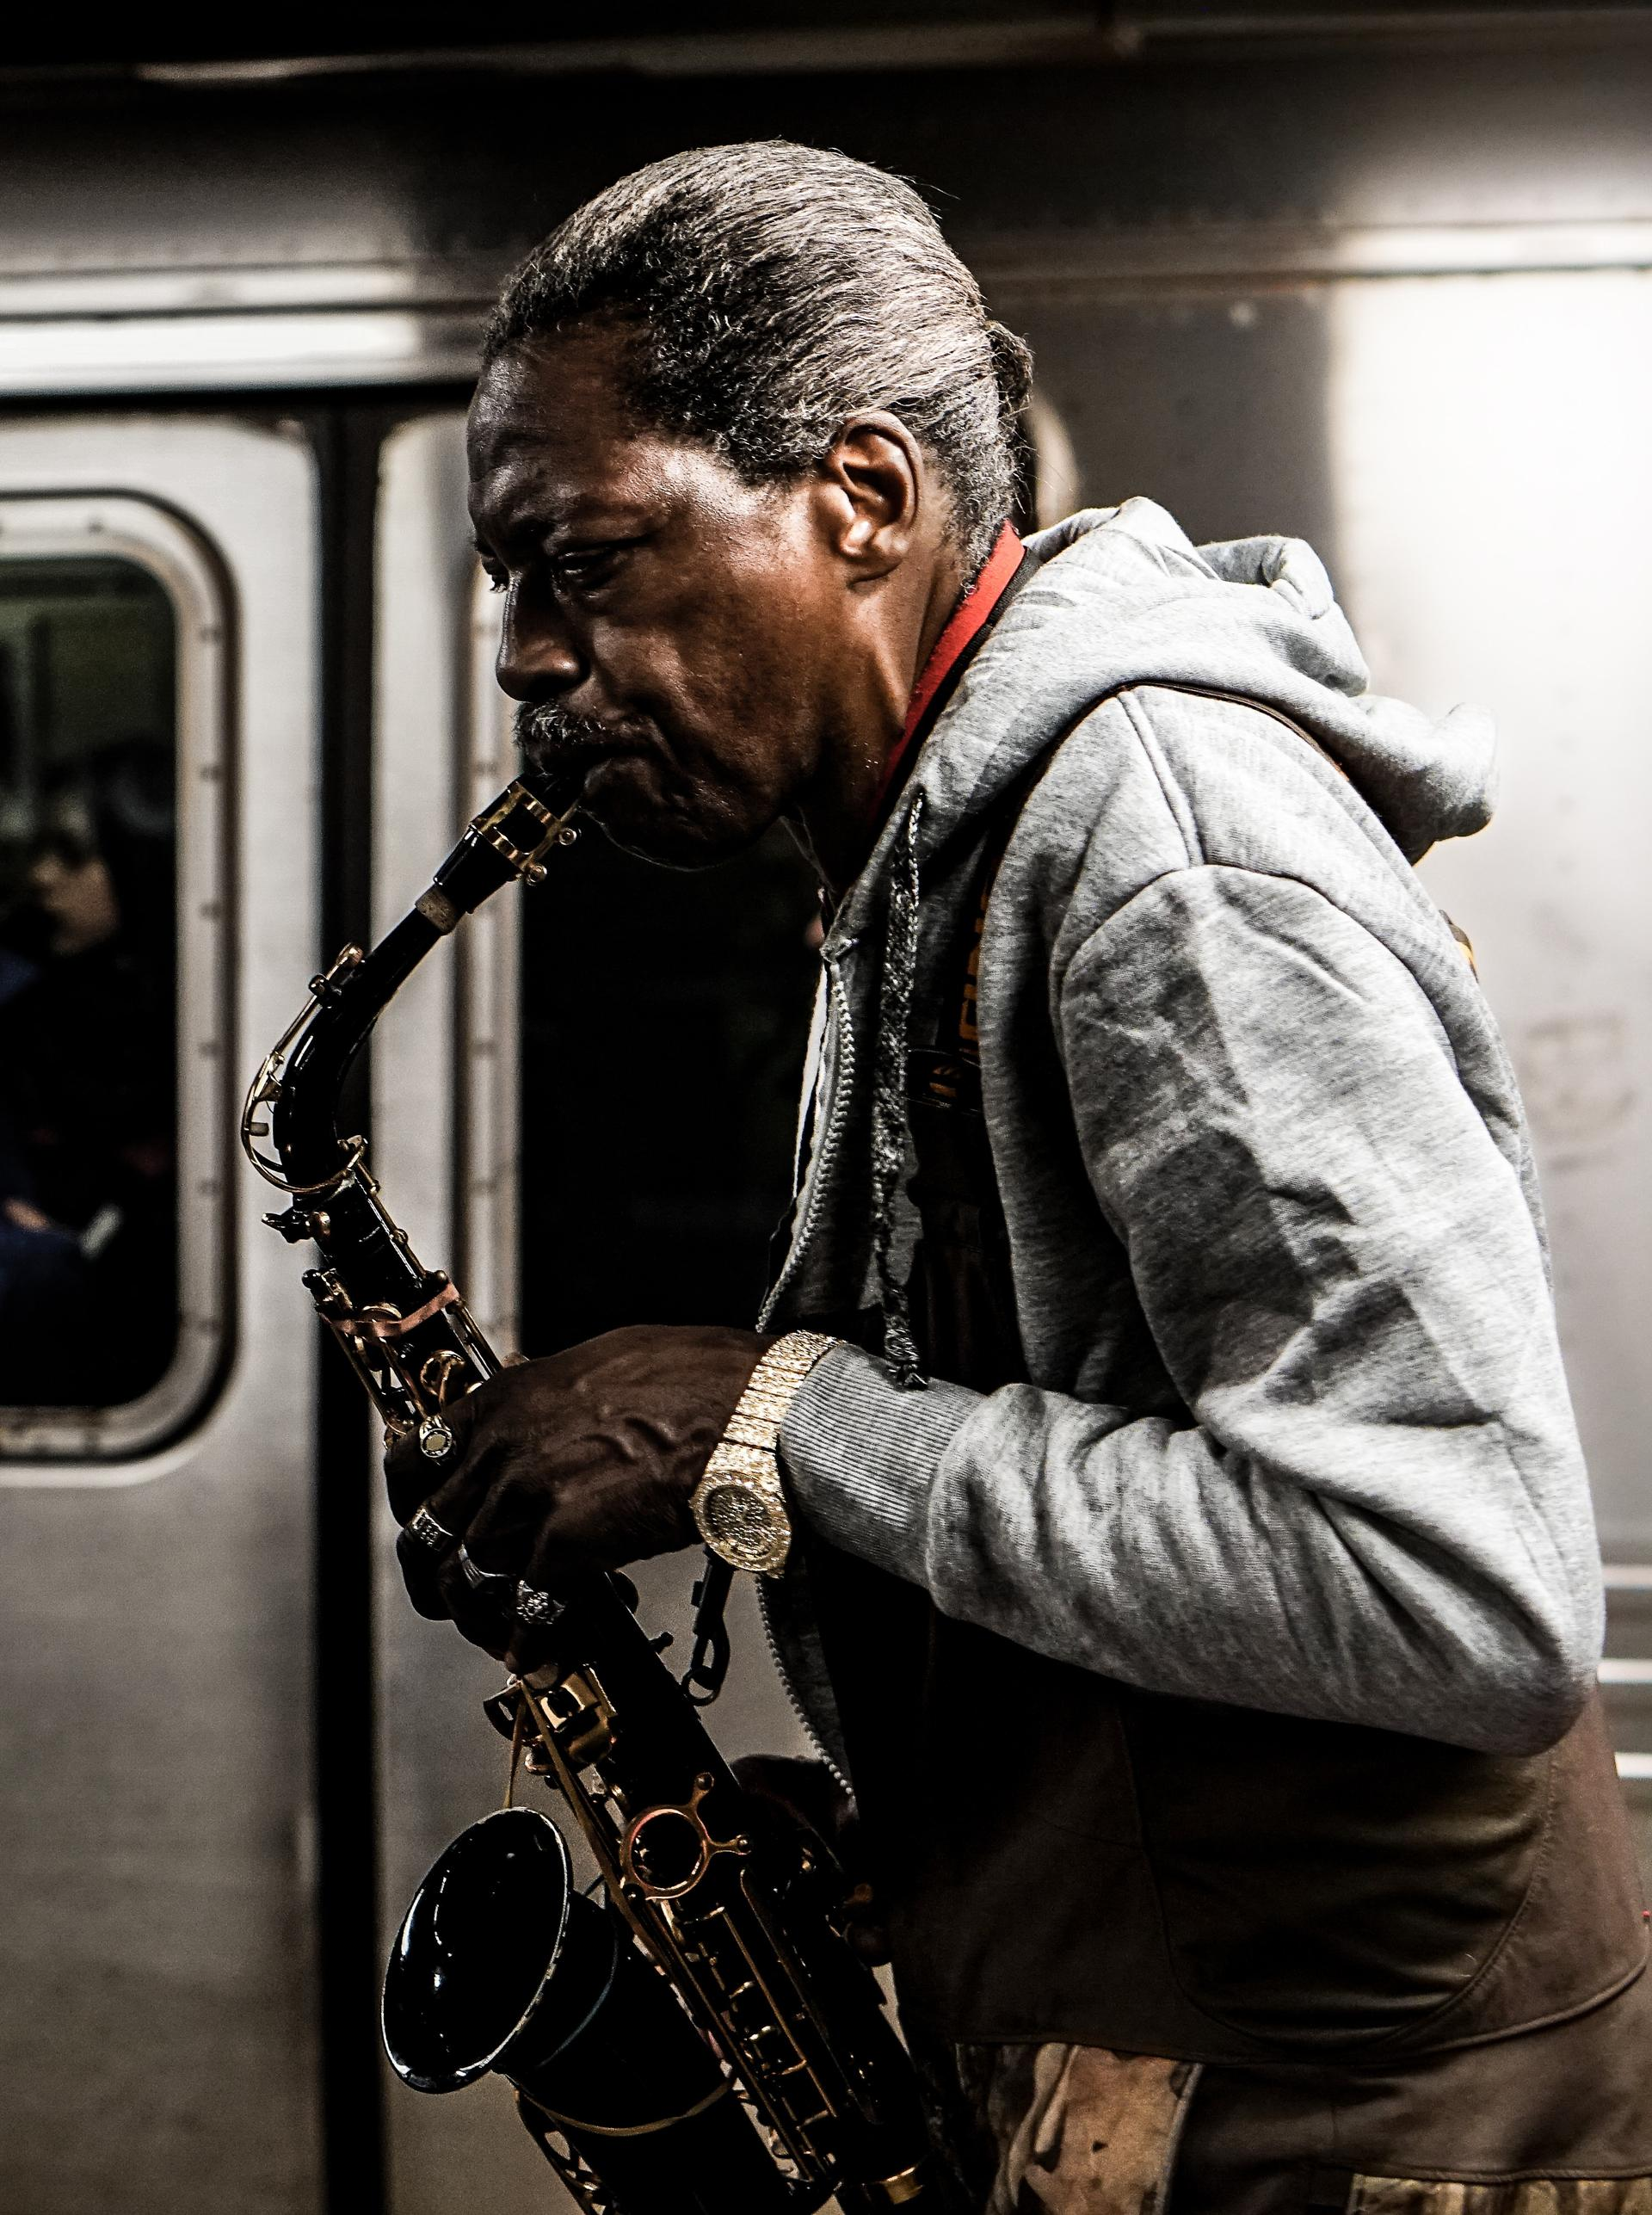 Here's how to play and improvise blues saxophone